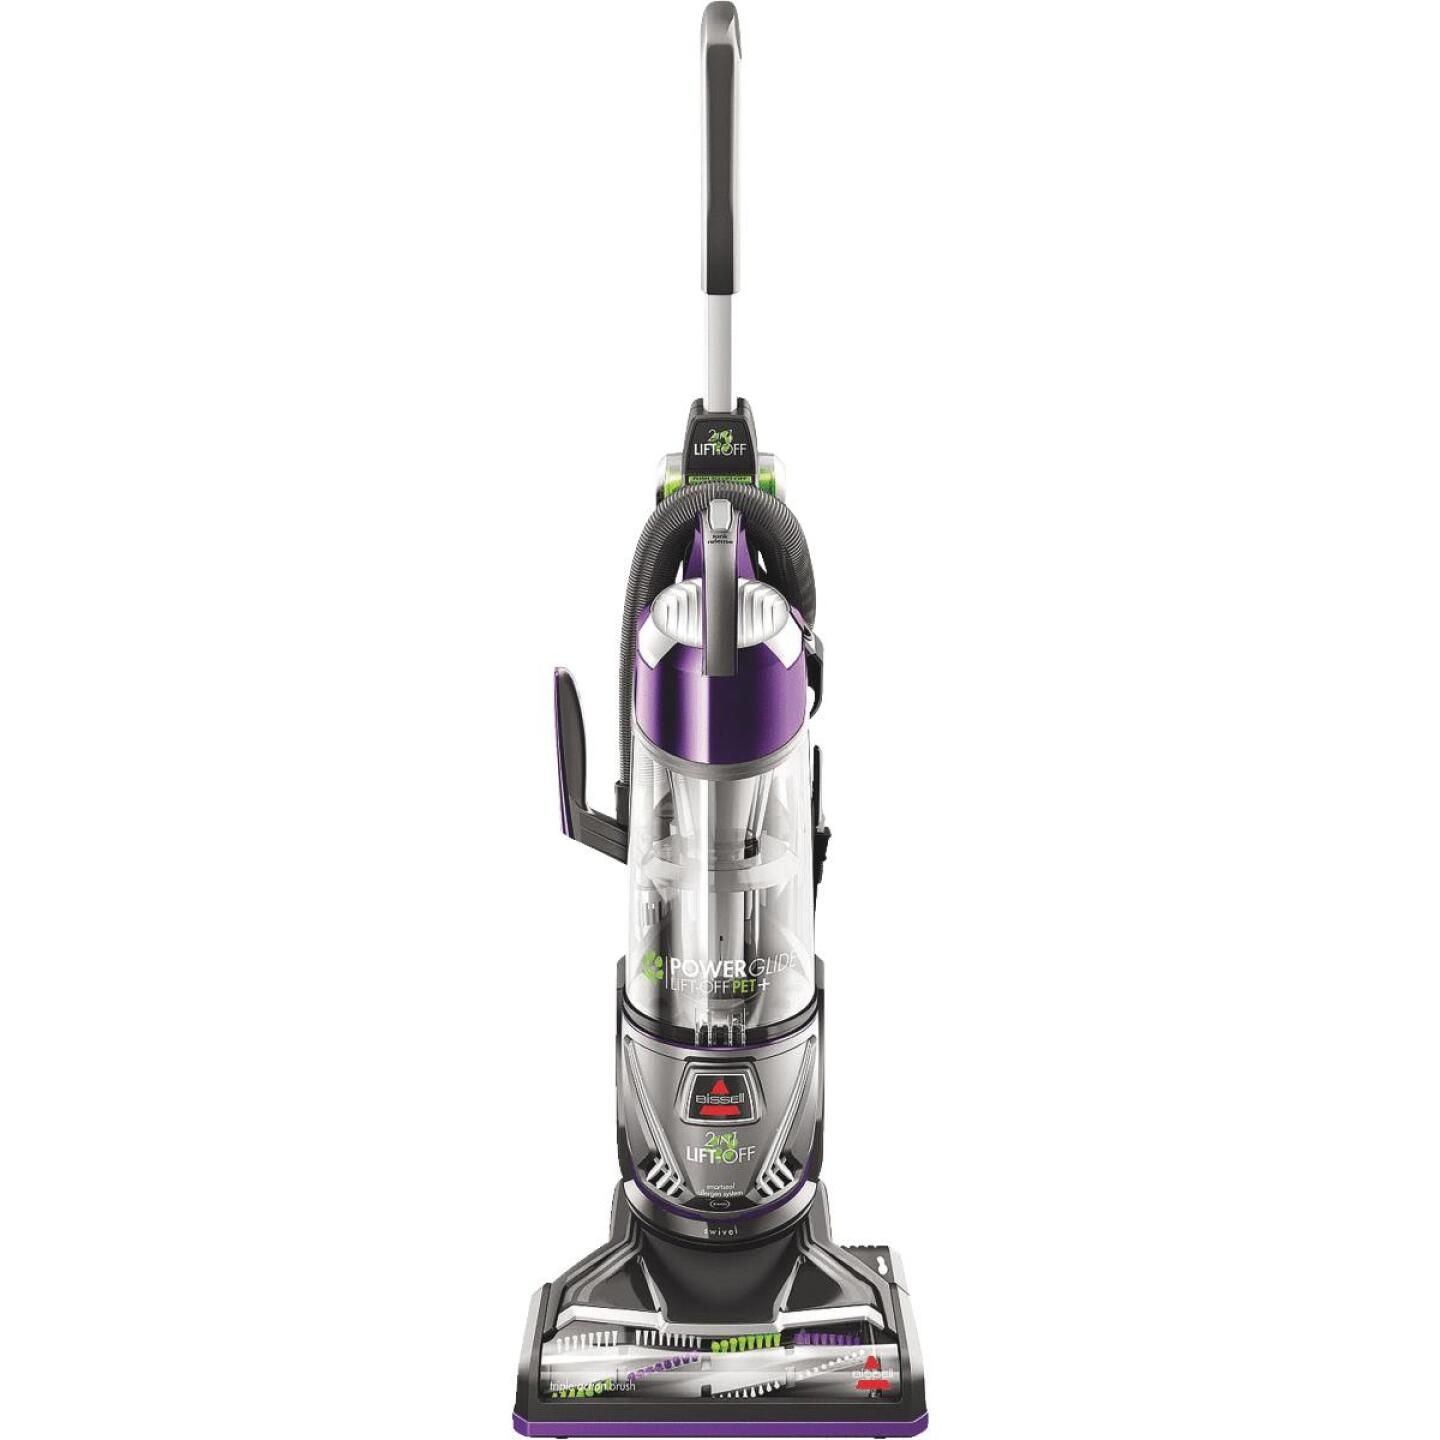 Bissell PowerGlide Lift-Off Pet Plus Bagless Upright Vacuum Cleaner Image 1